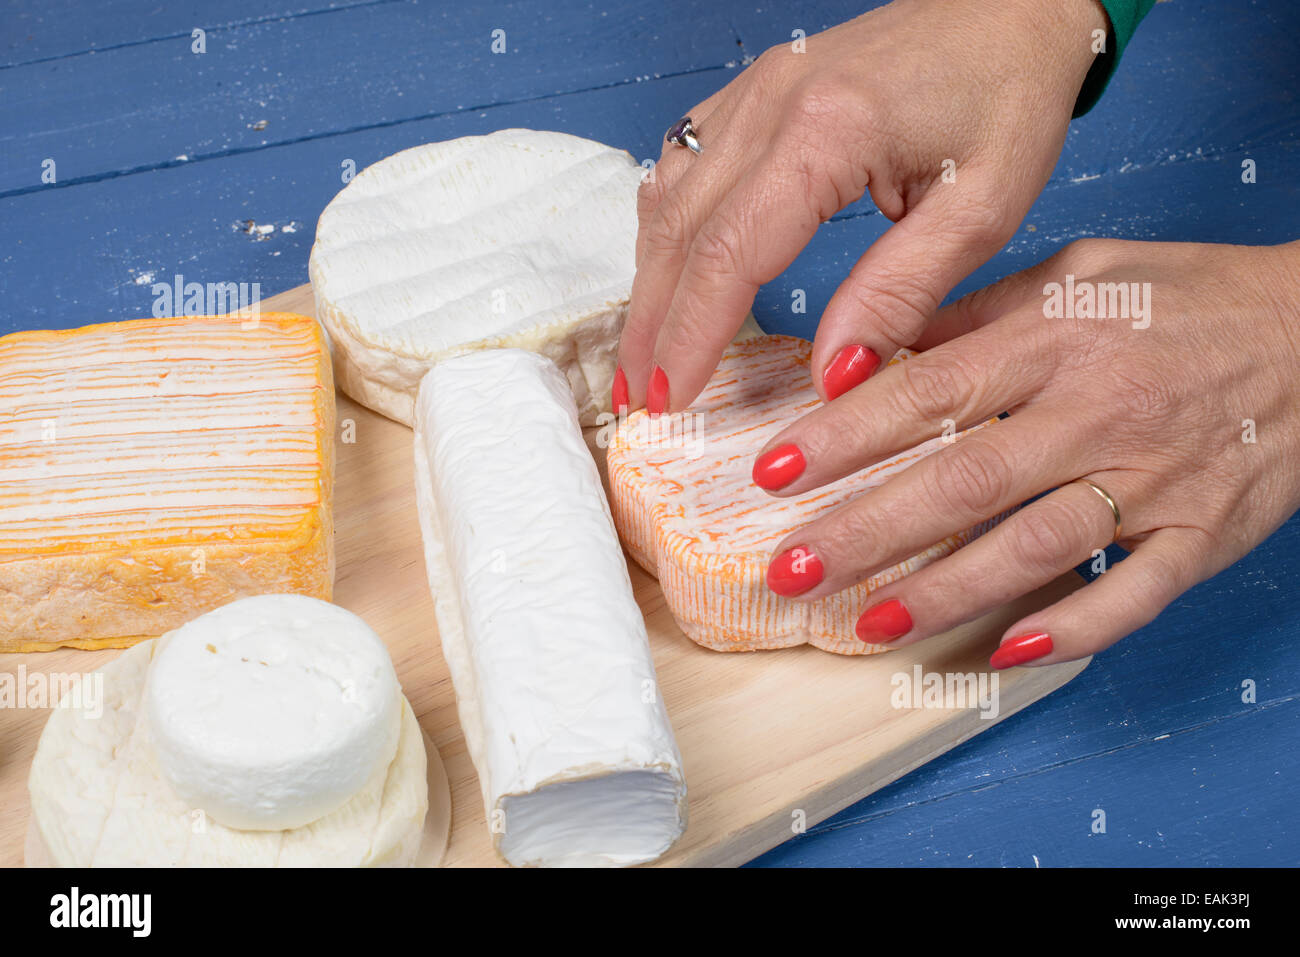 presentation of different French cheeses on blue table - Stock Image